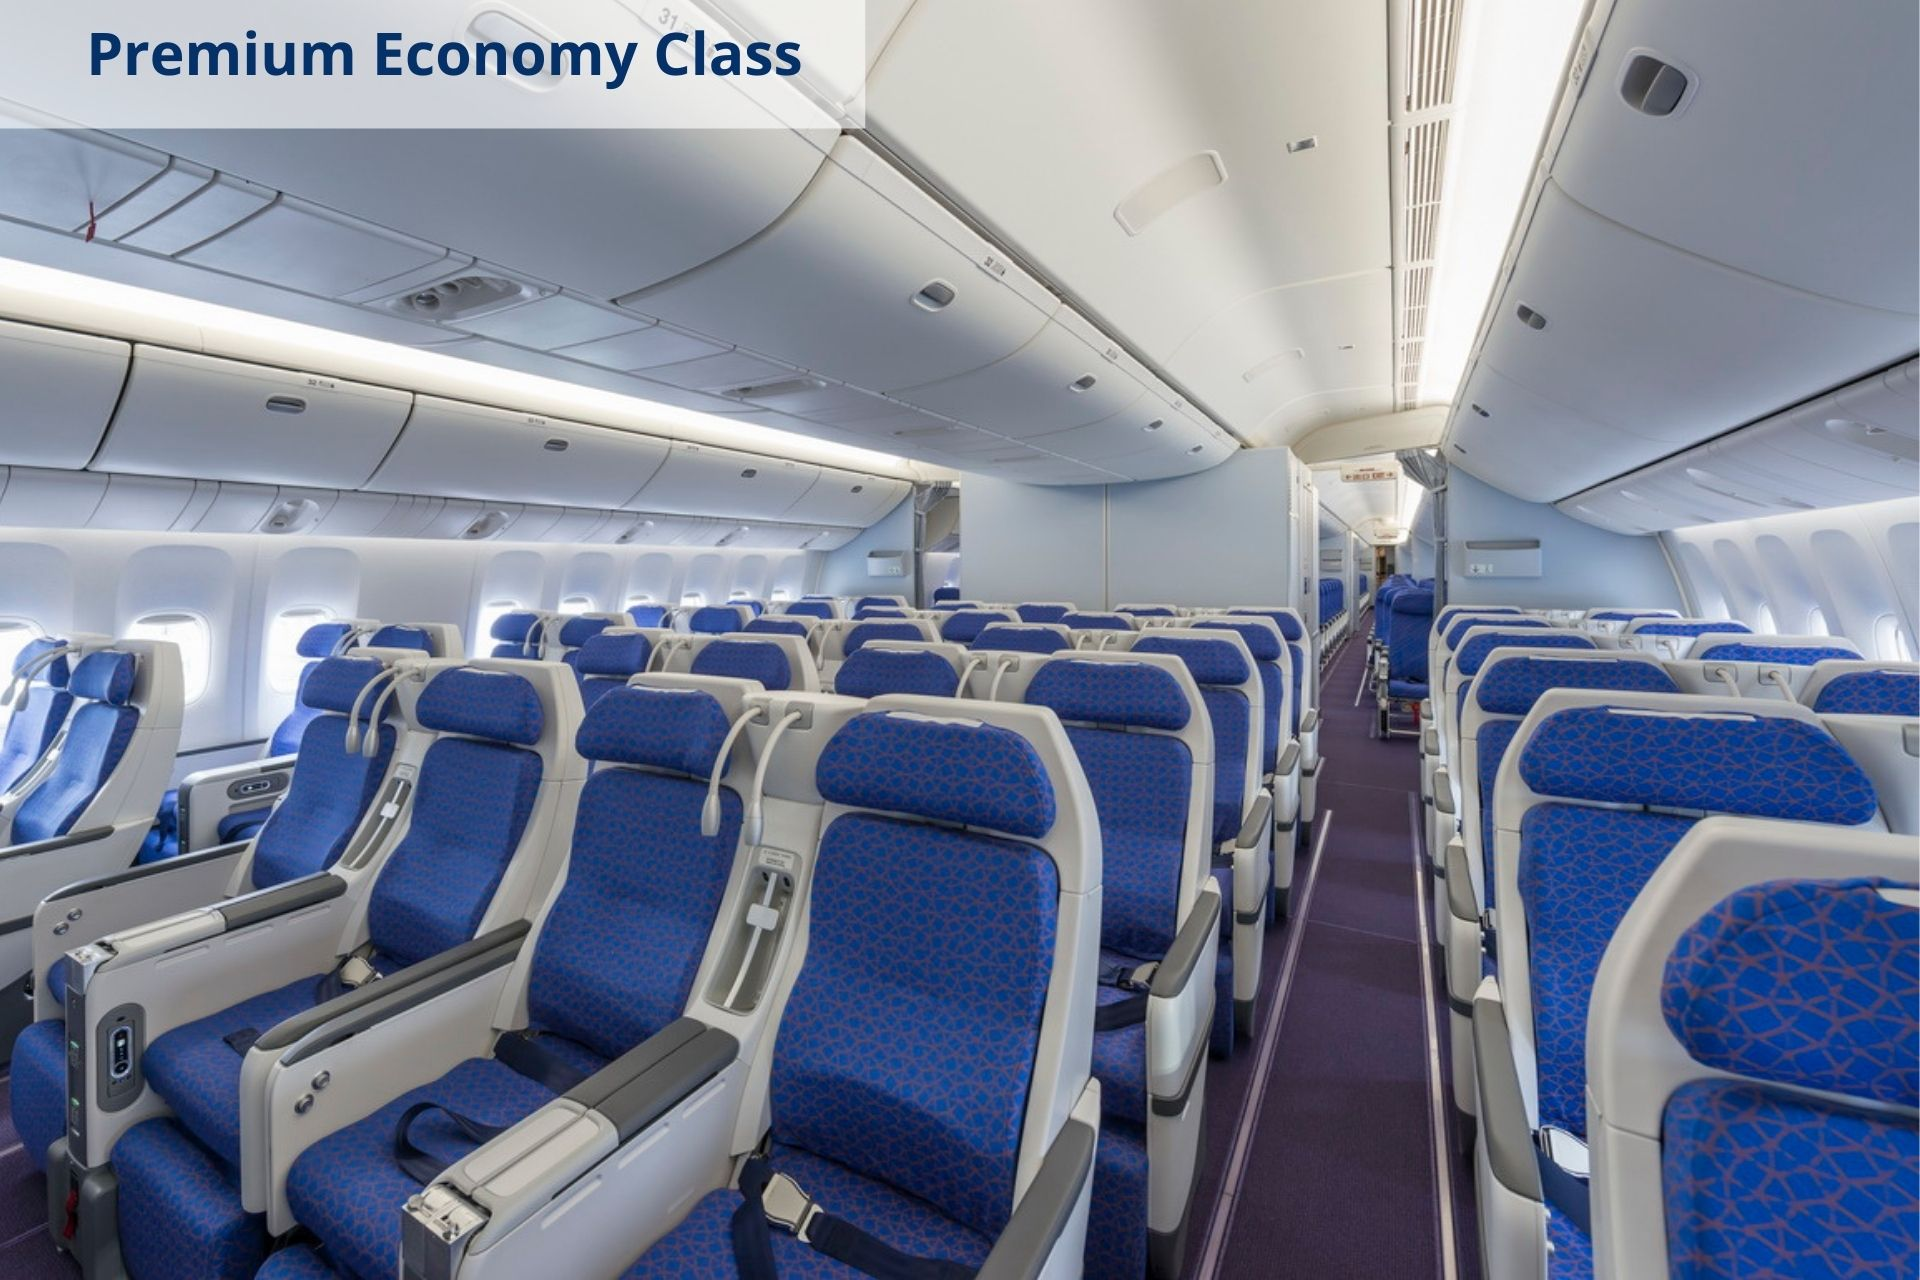 China Southern Airlines premium economy class